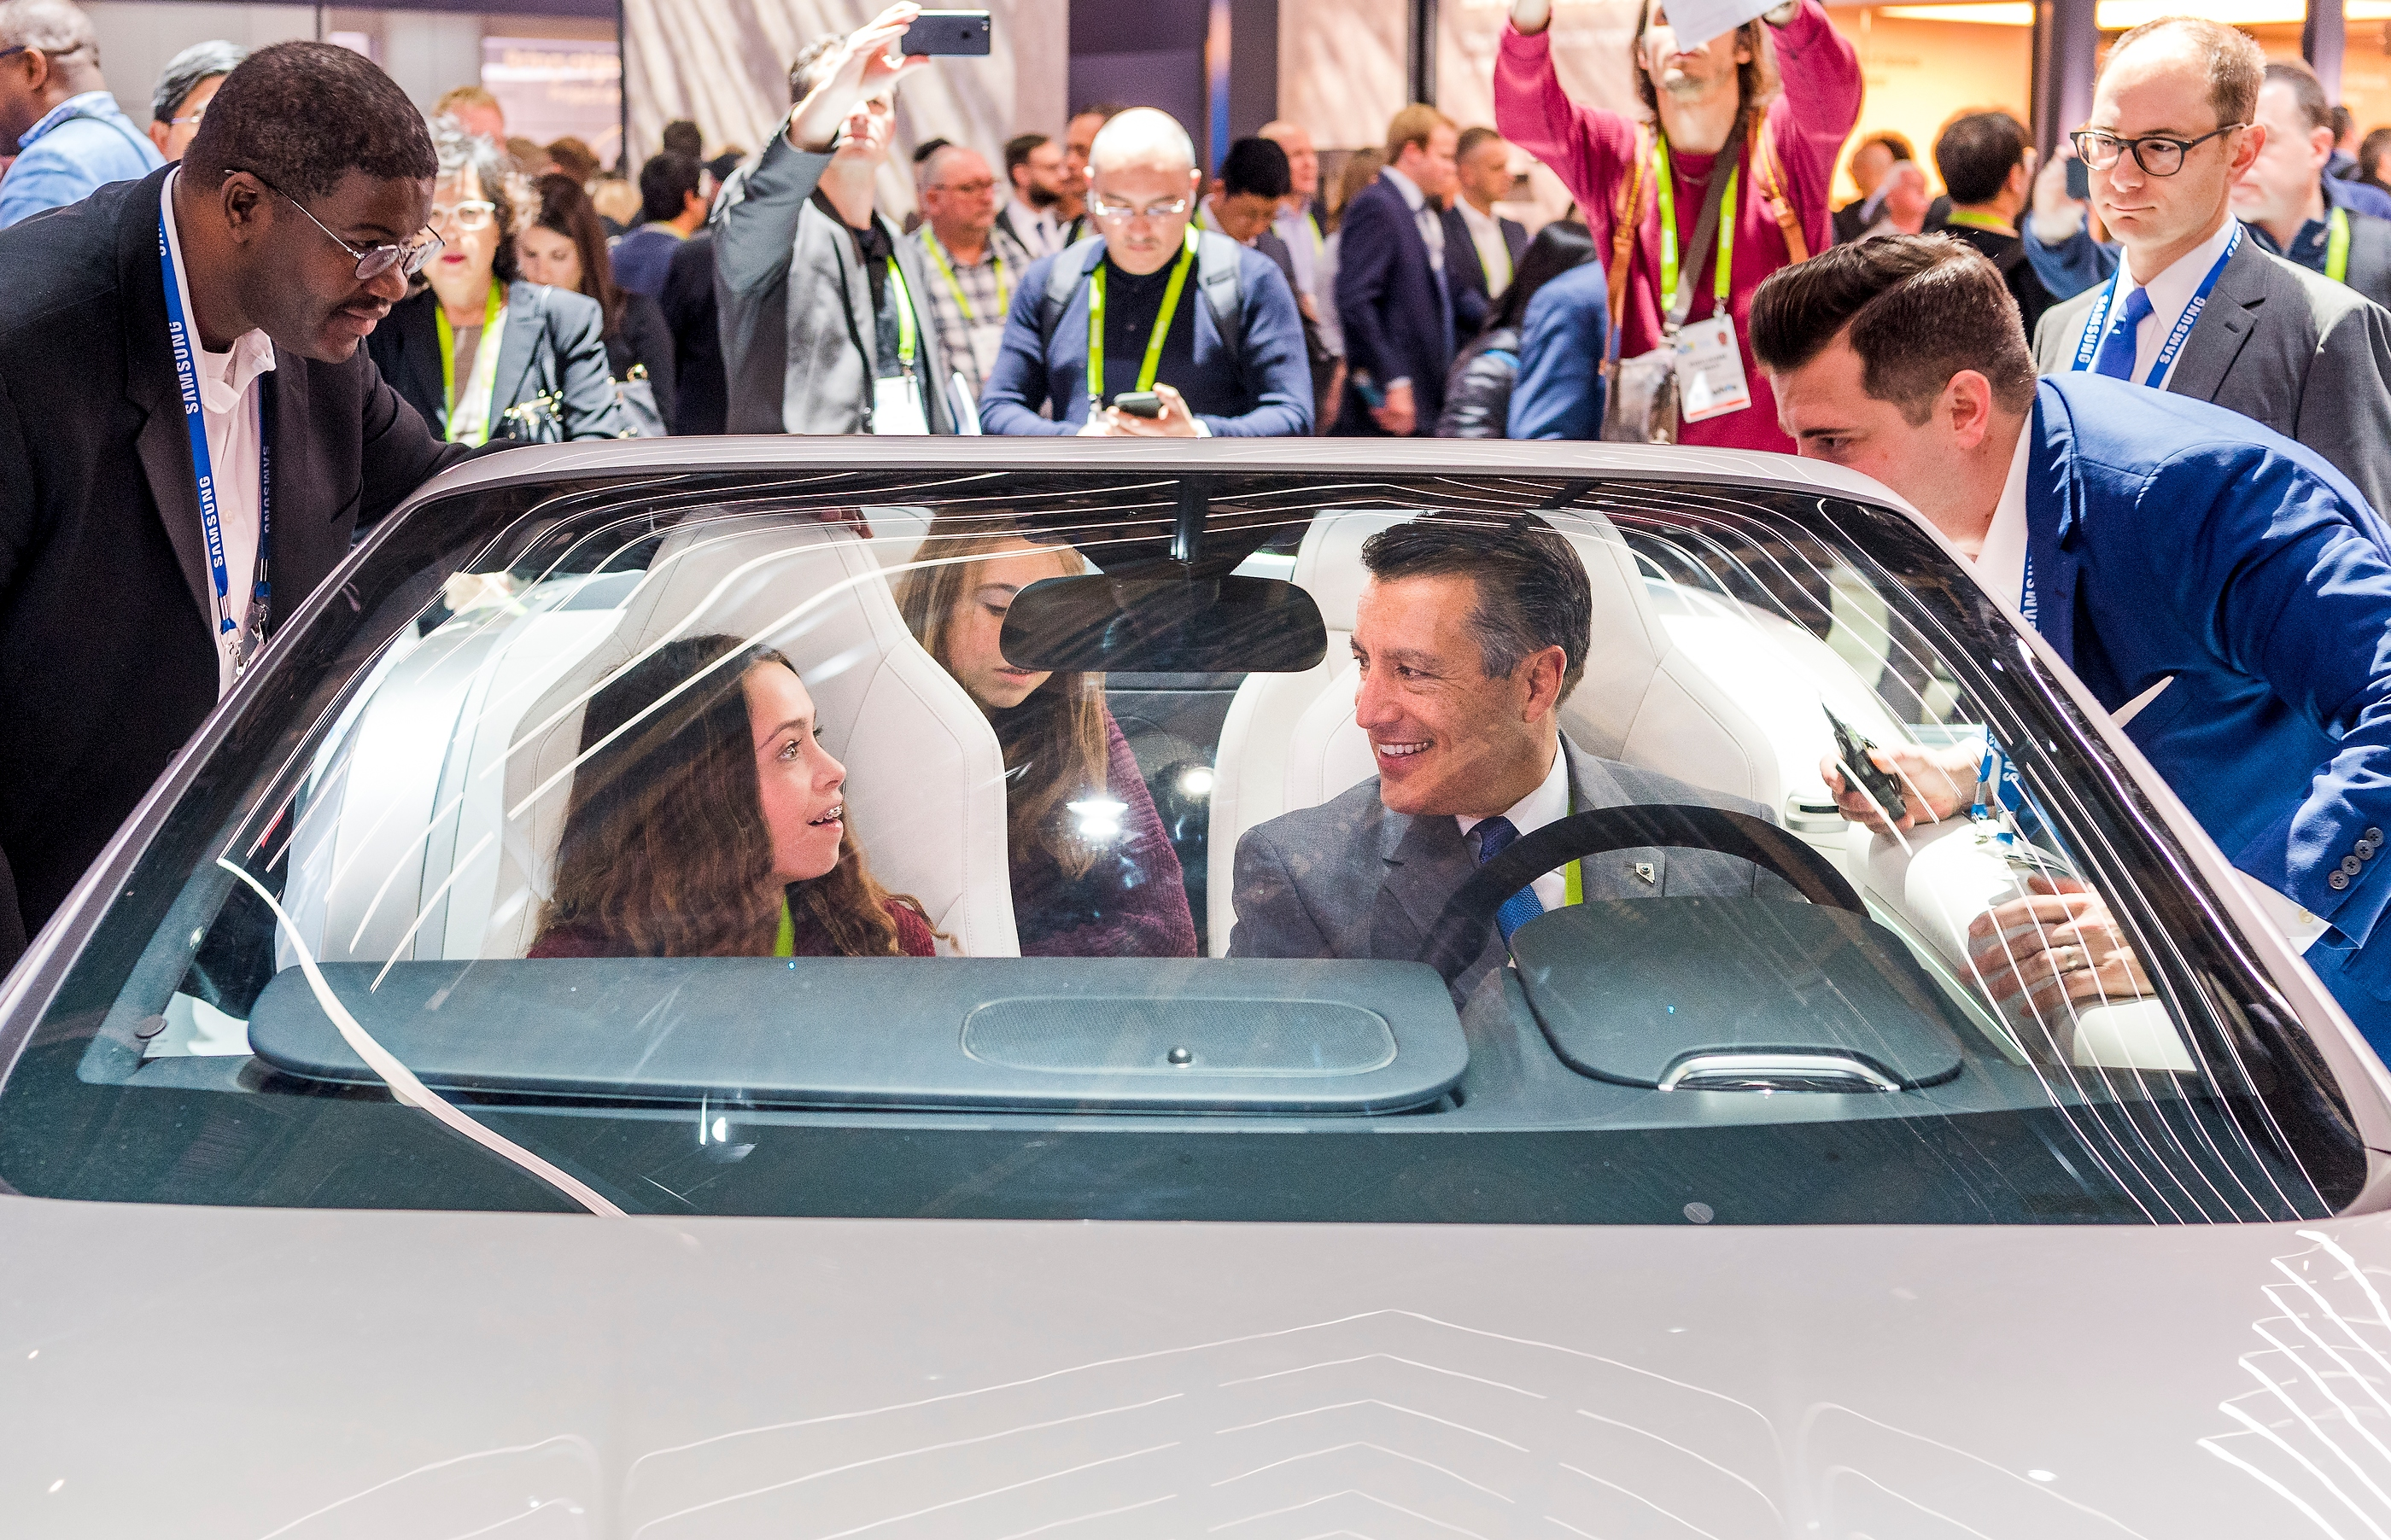 Nevada Governor Brian Sandoval, right, and daughter Marisa Sandoval check out the features of a high-tech Corvette in the Samsung booth at CES in the Las Vegas Convention Center on Thursday, Jan. 11, 2018. CREDIT: Mark Damon/Las Vegas News Bureau